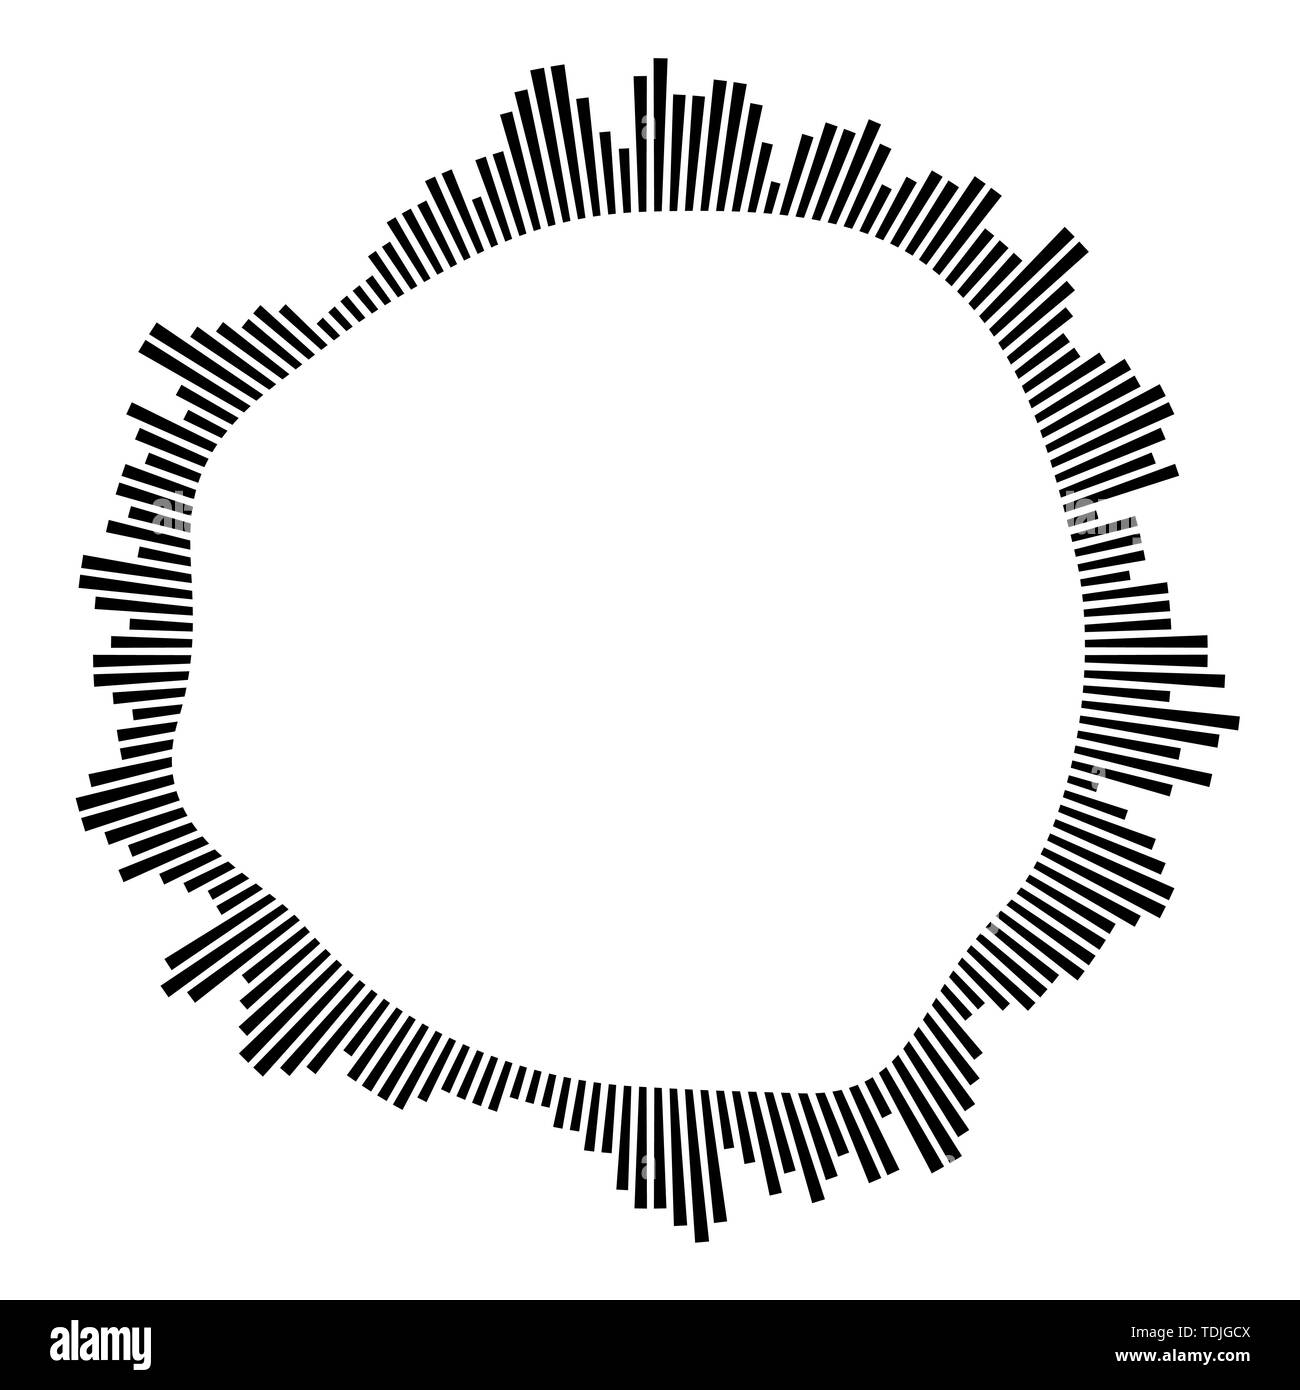 Black circular frame on white background. Round shape. Radial black concentric particles. Black ring of short thin rays. Sound wave. Sun ray or star b Stock Vector